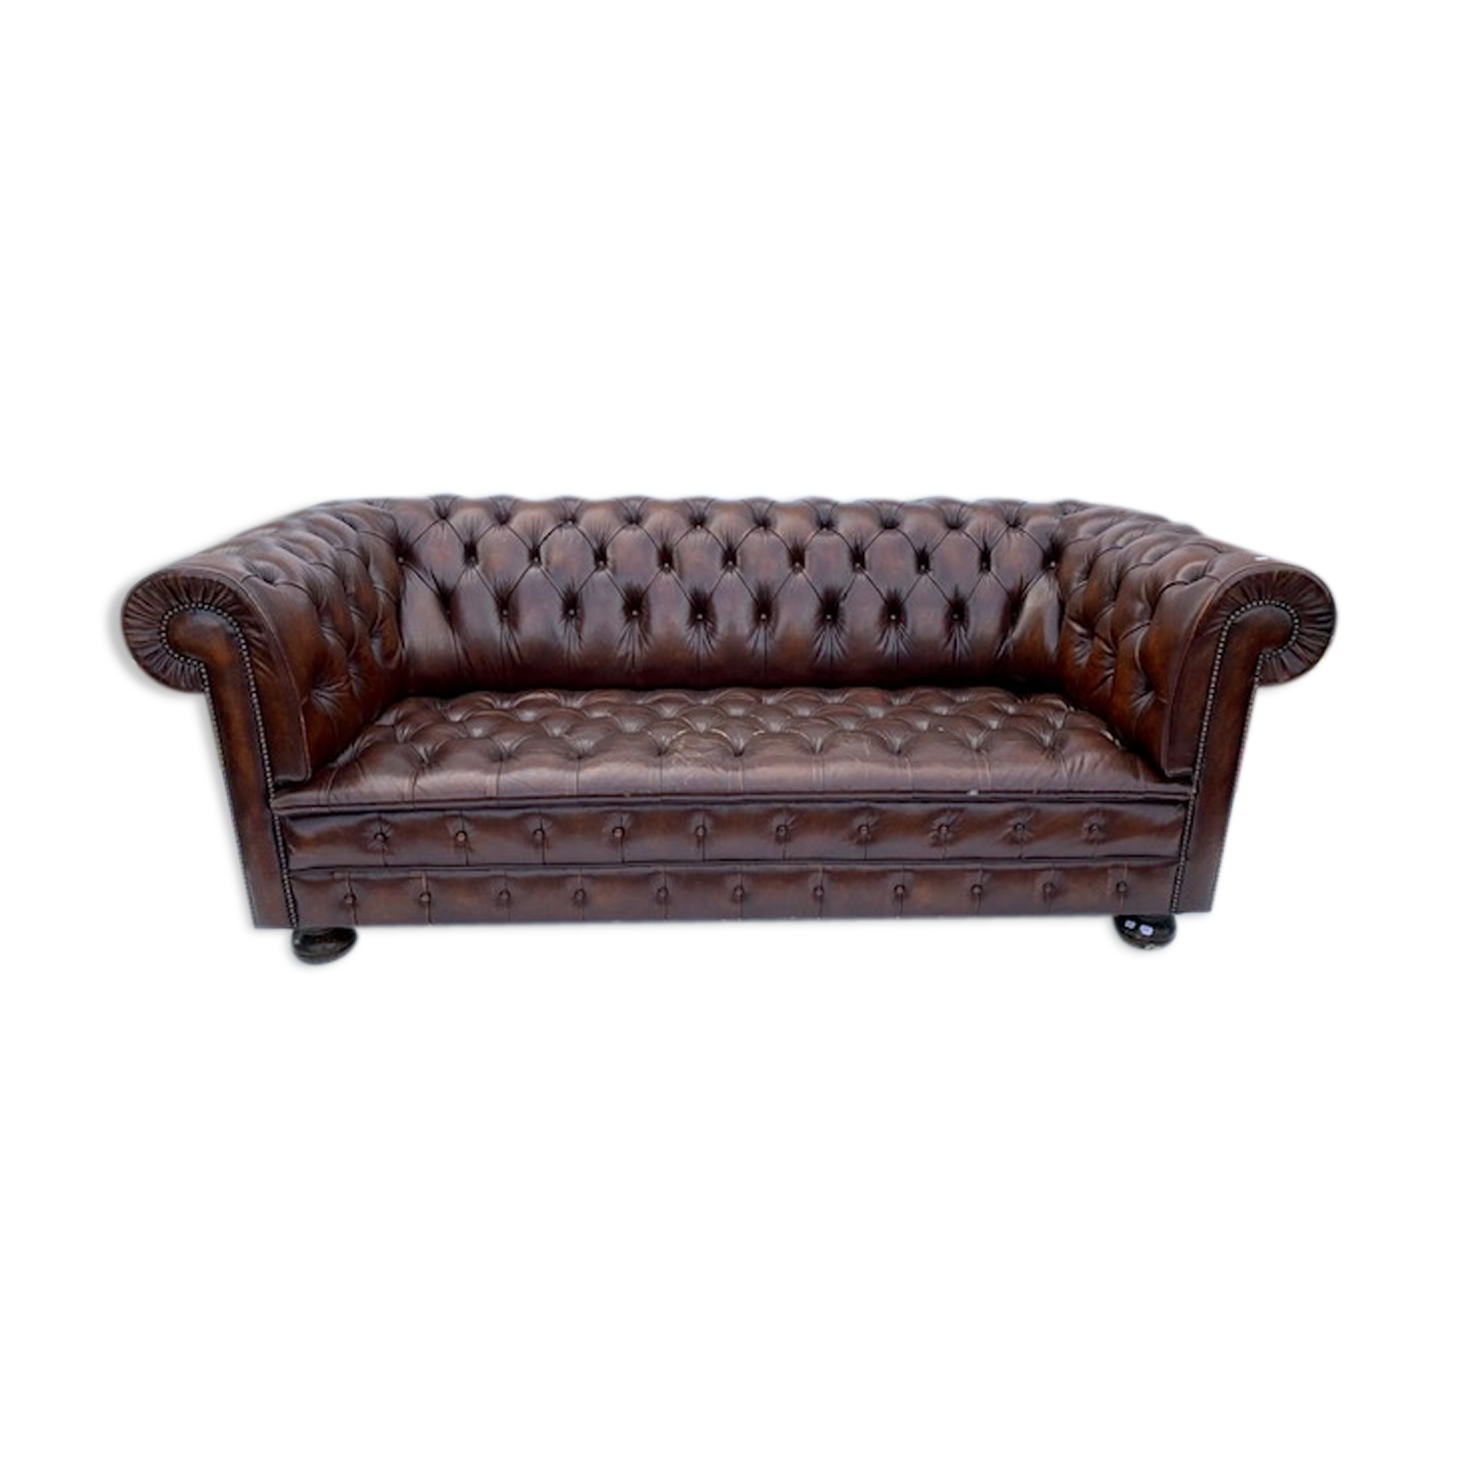 Canape Chesterfield Canape Chesterfield Chesterfield Et Canape Banquette